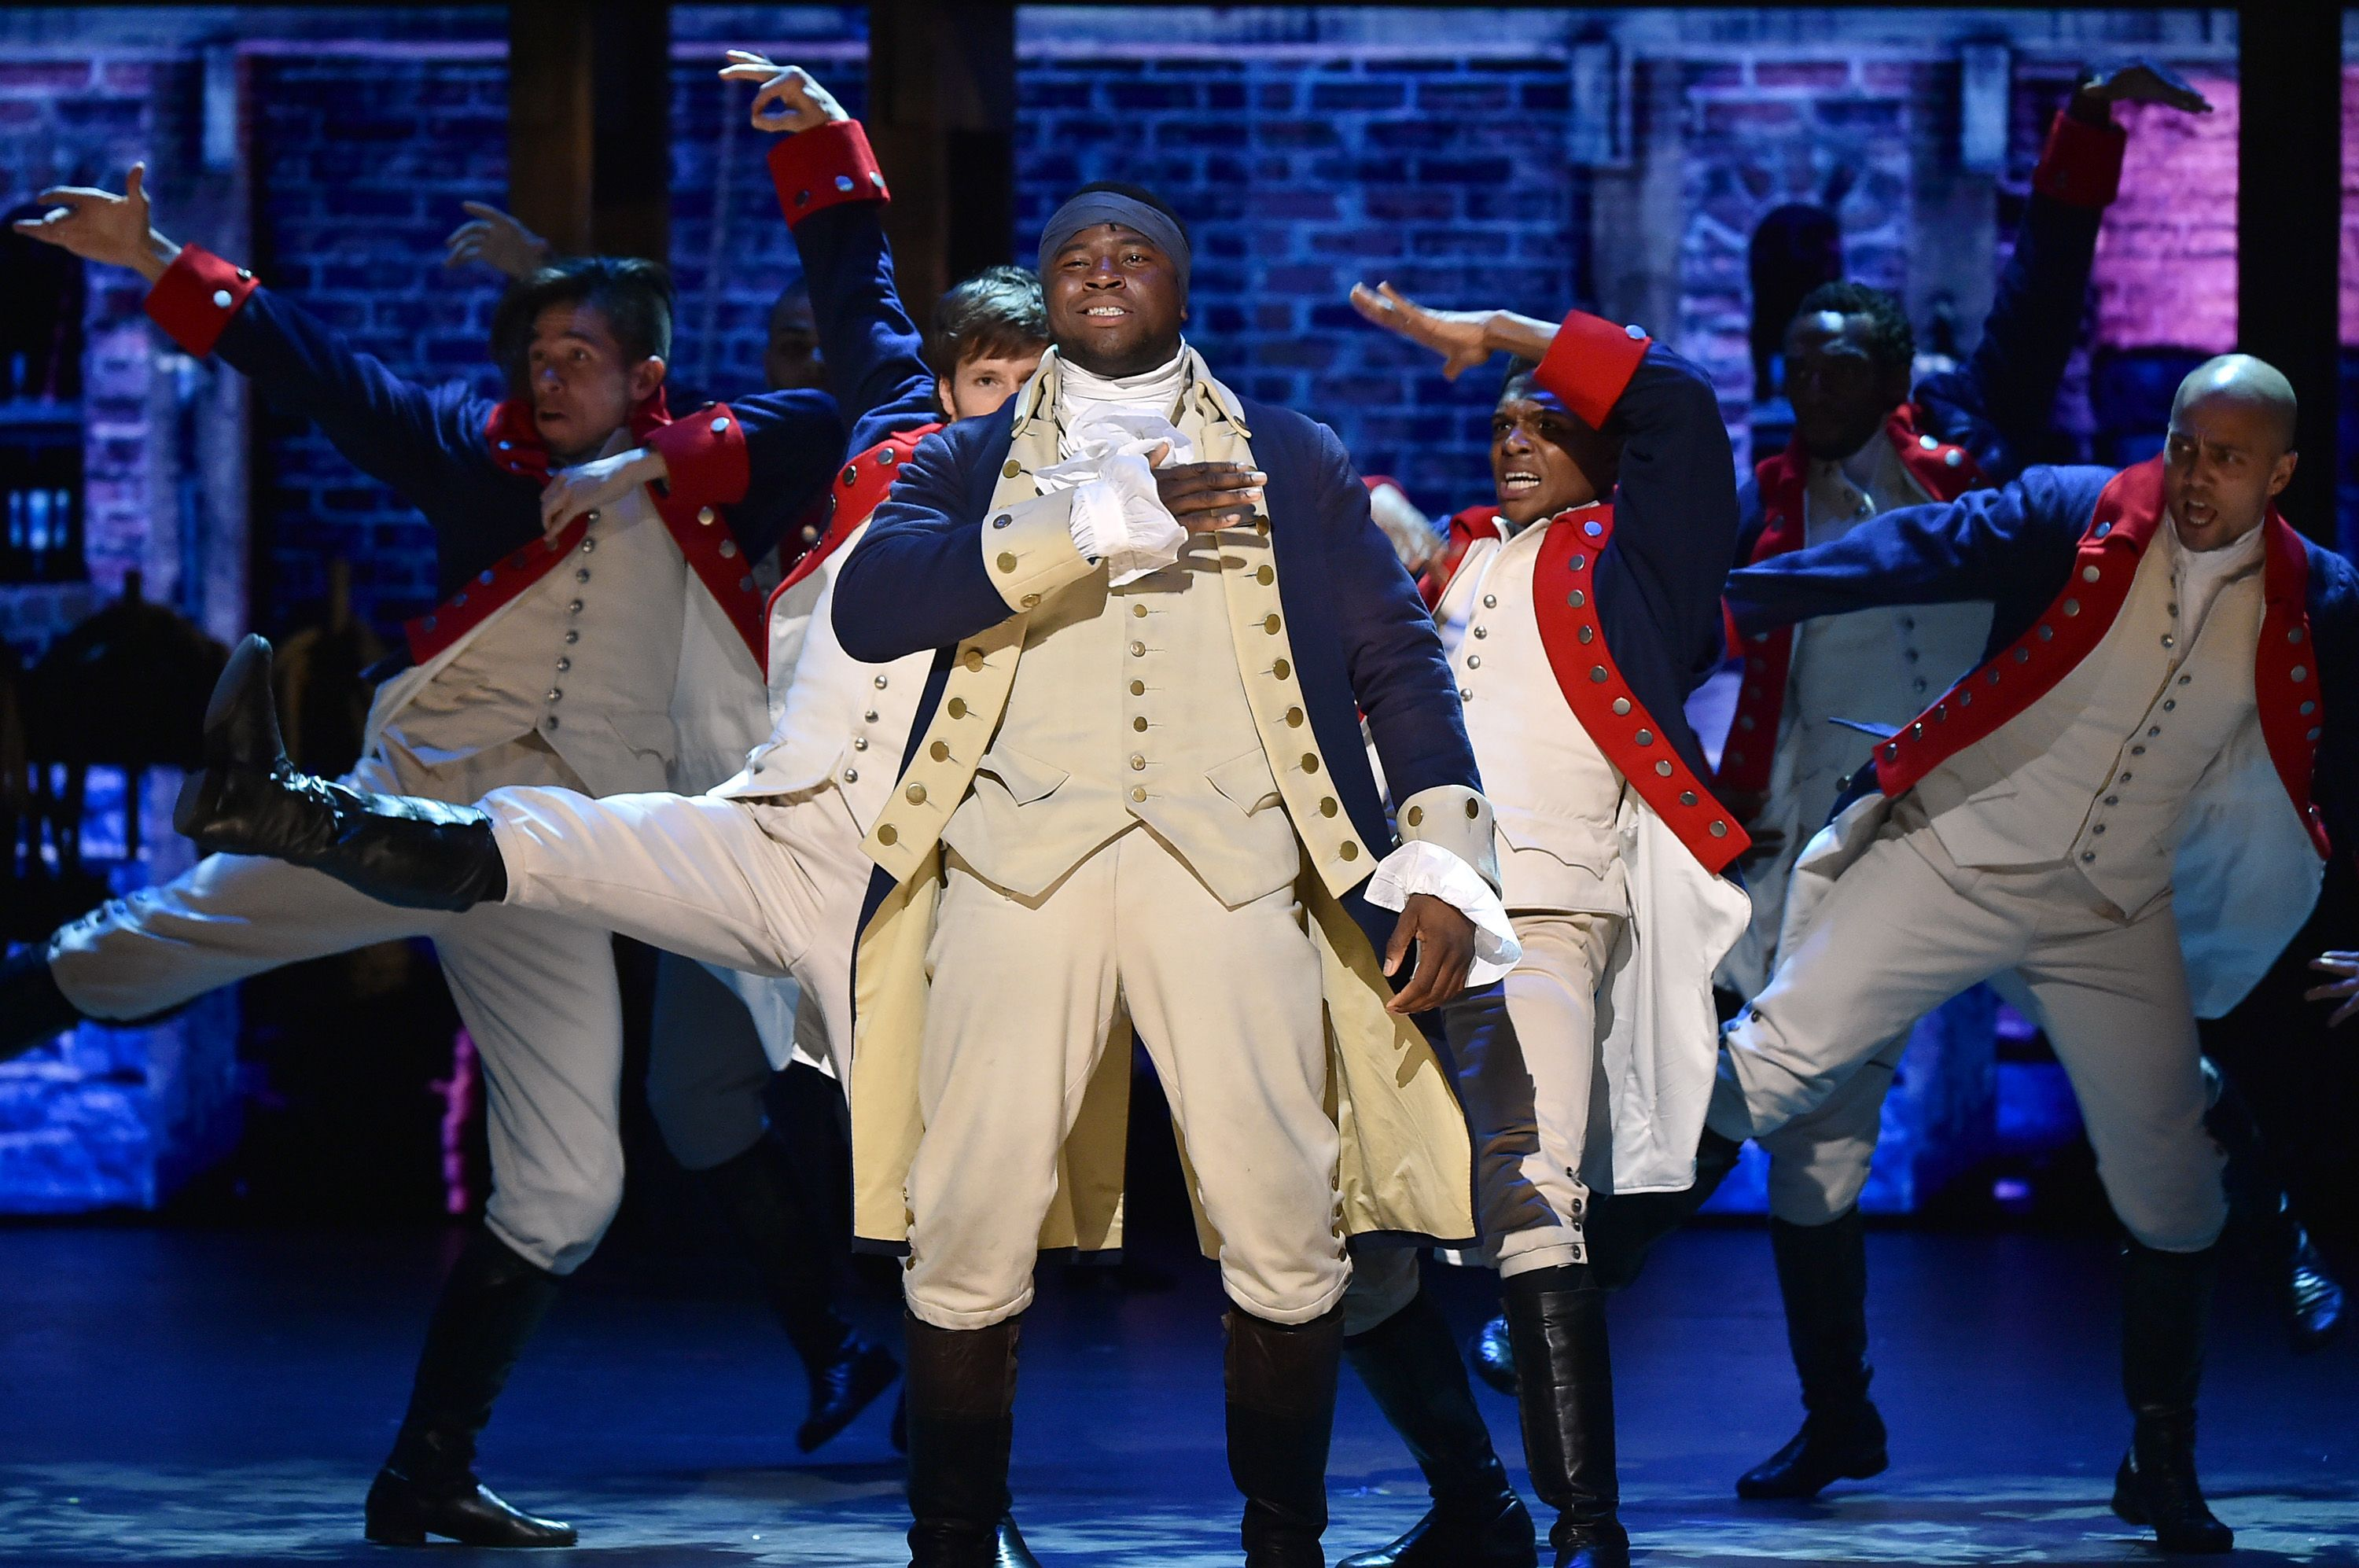 Okieriete Onaodowan and the cast of 'Hamilton' perform onstage during the 70th Annual Tony Awards / Getty Images